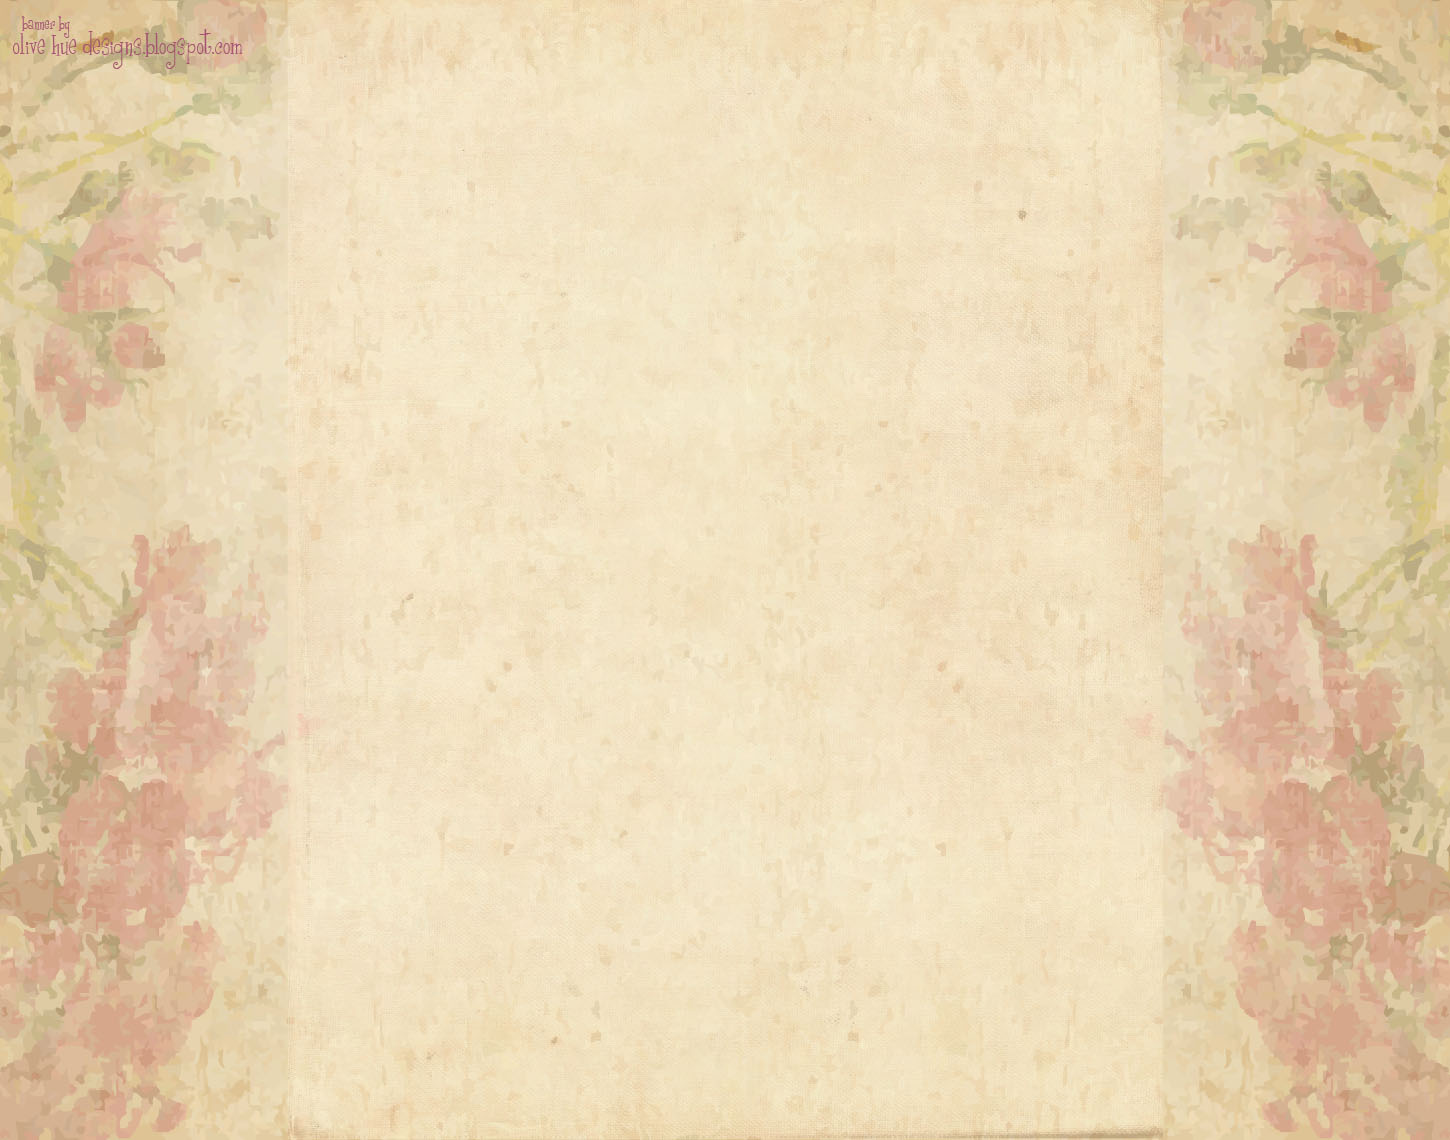 Olive Hue Designs Background Instructions